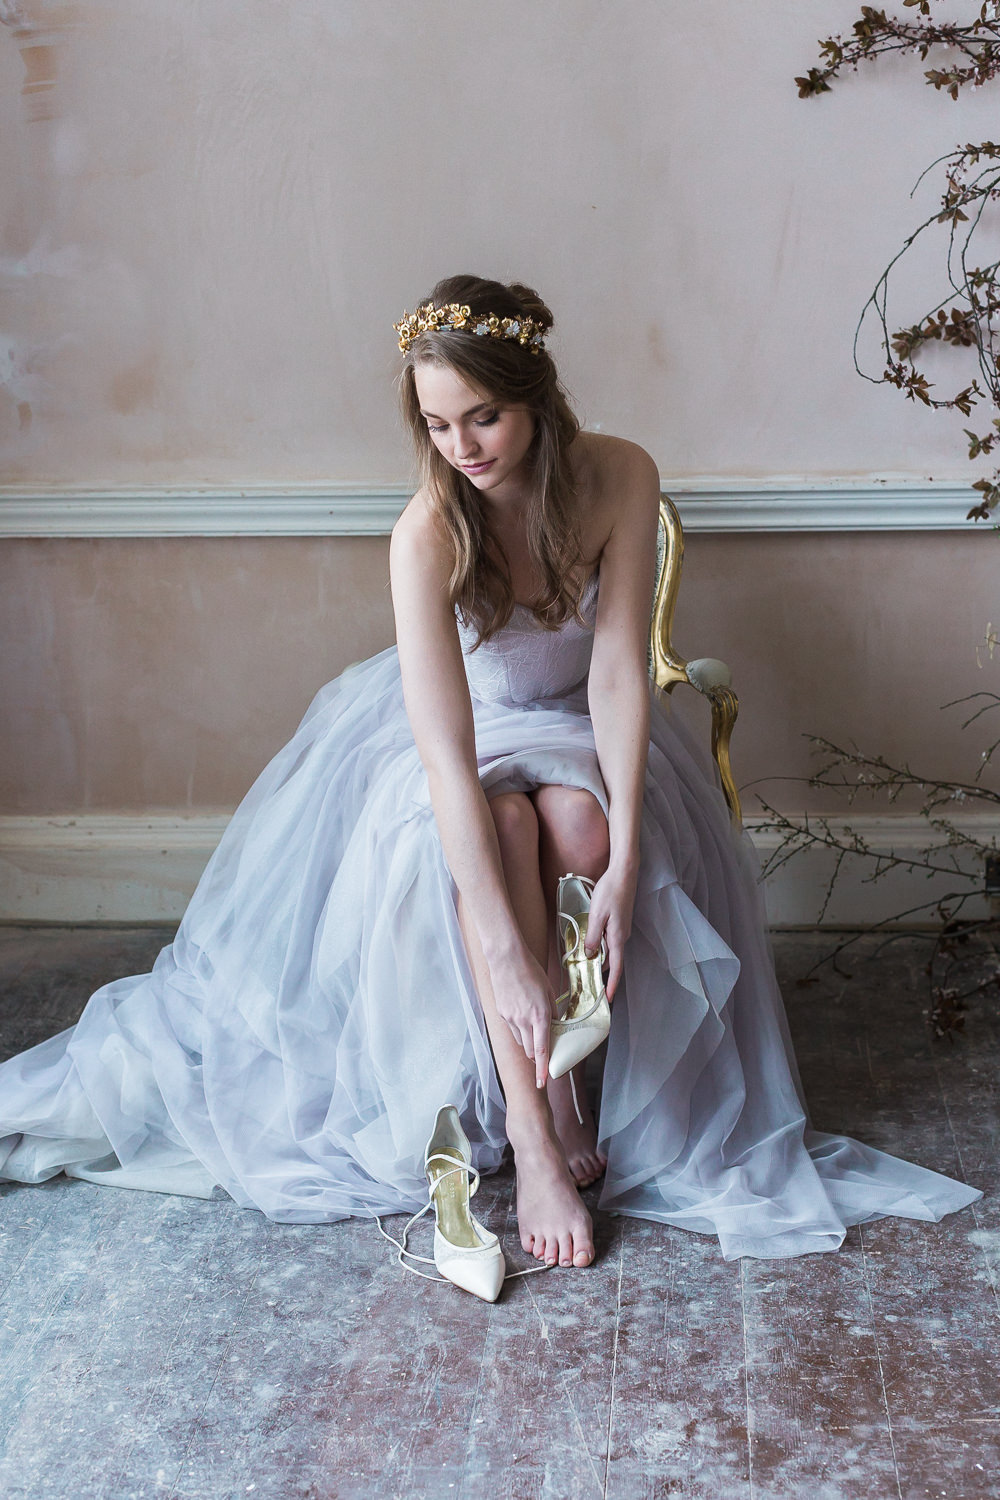 Modern Ballet Inspired Editorial Fine Art Somerley House Bride Lilac Dress Naomi Neoh Samantha Walden Gold Floral Headpiece Tiara Freya Rose Shoes | Romantic Soft Wedding Ideas Siobhan H Photography